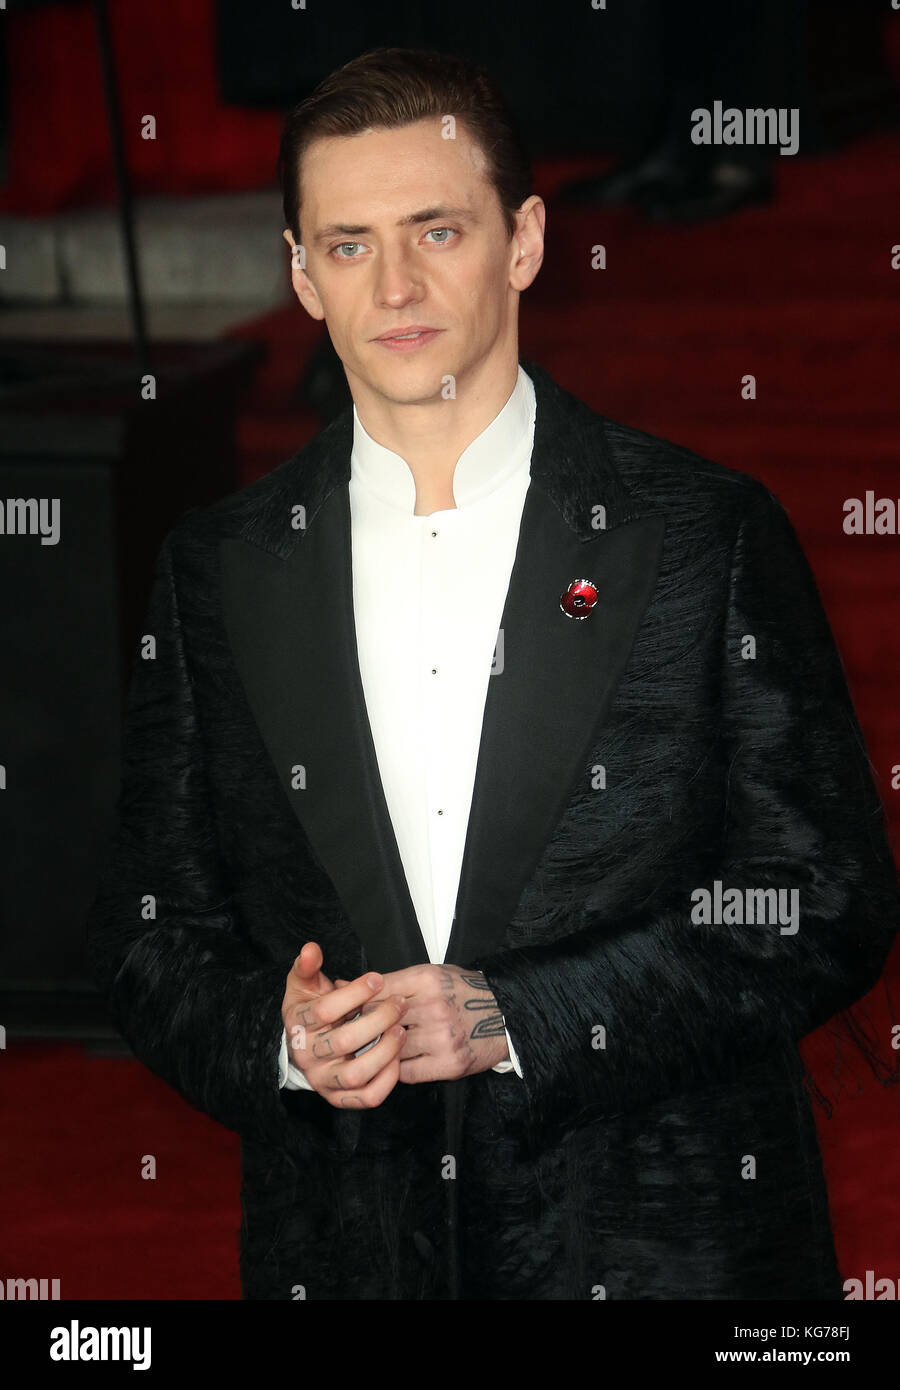 London, UK. 2nd November, 2017. Sergei Polunin the Murder on the Orient Express film premiere - Stock Image